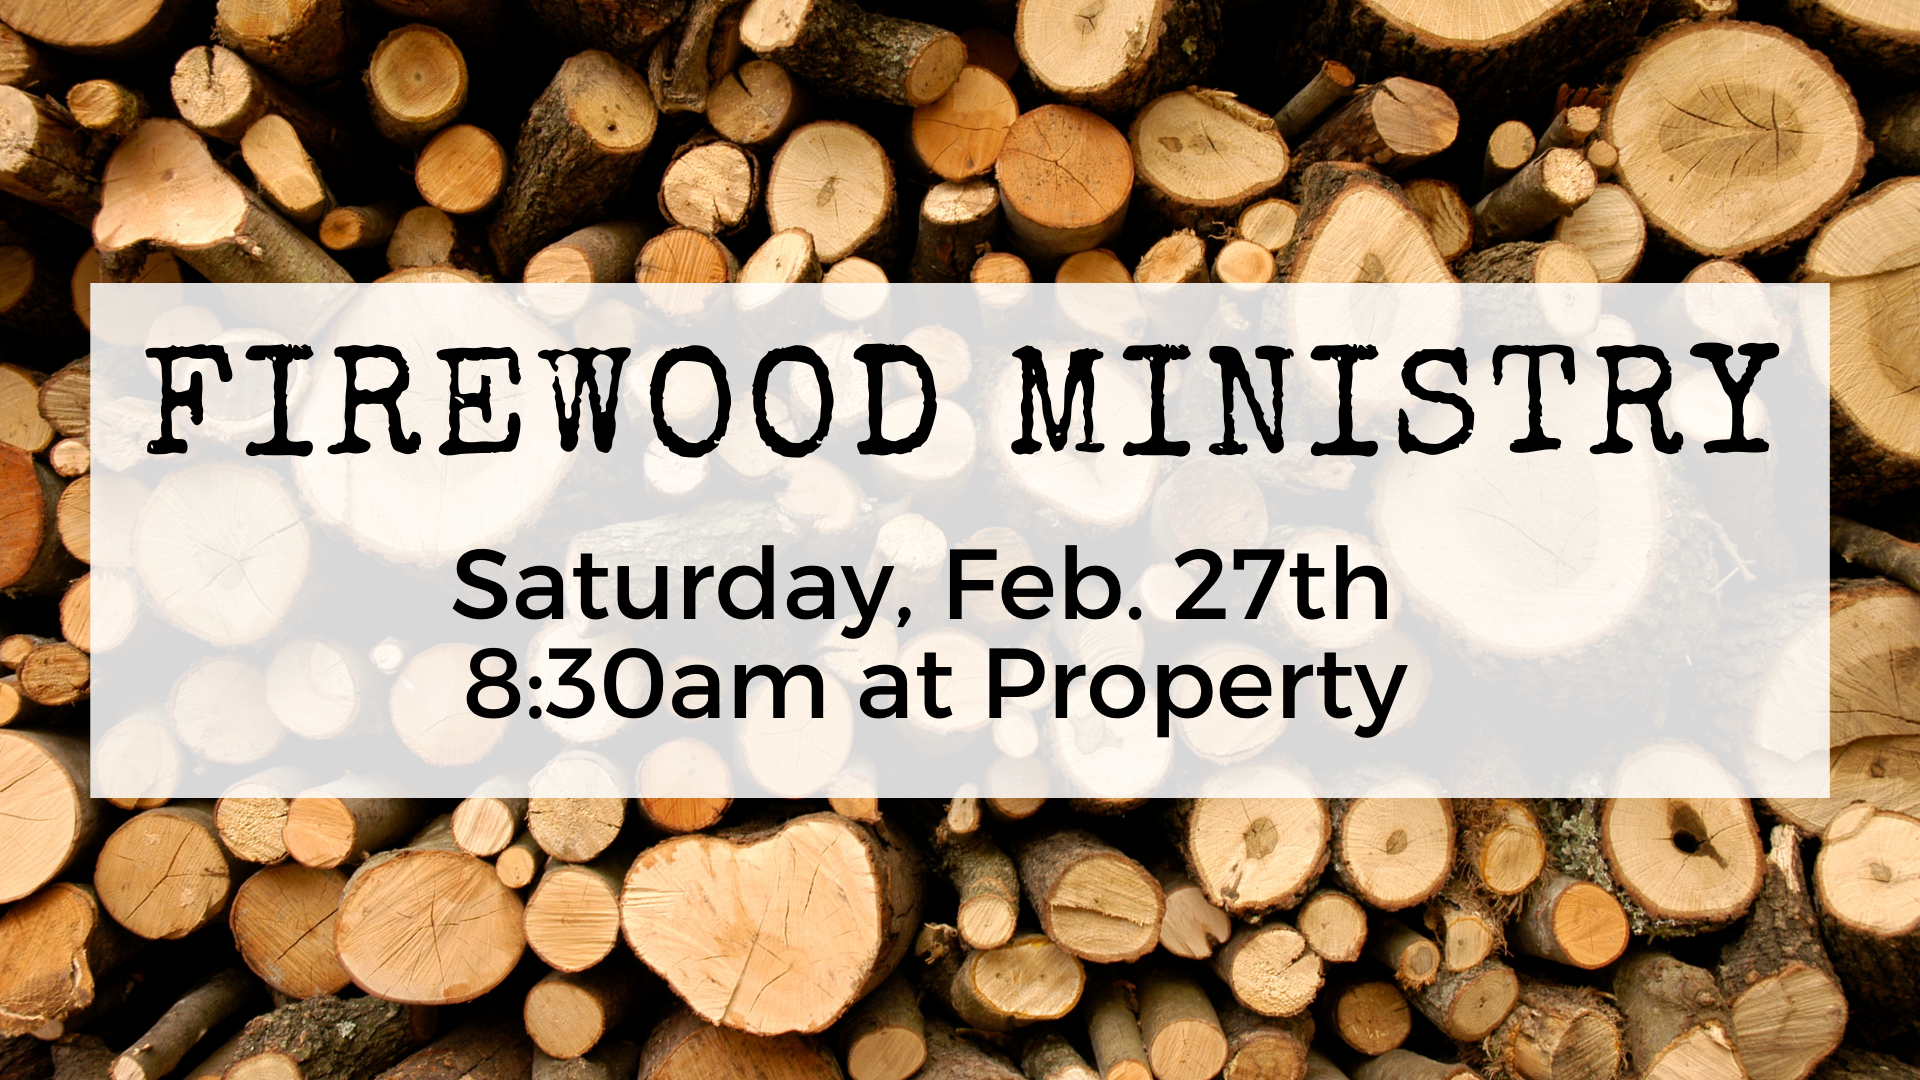 Copy of Firewood ministry1